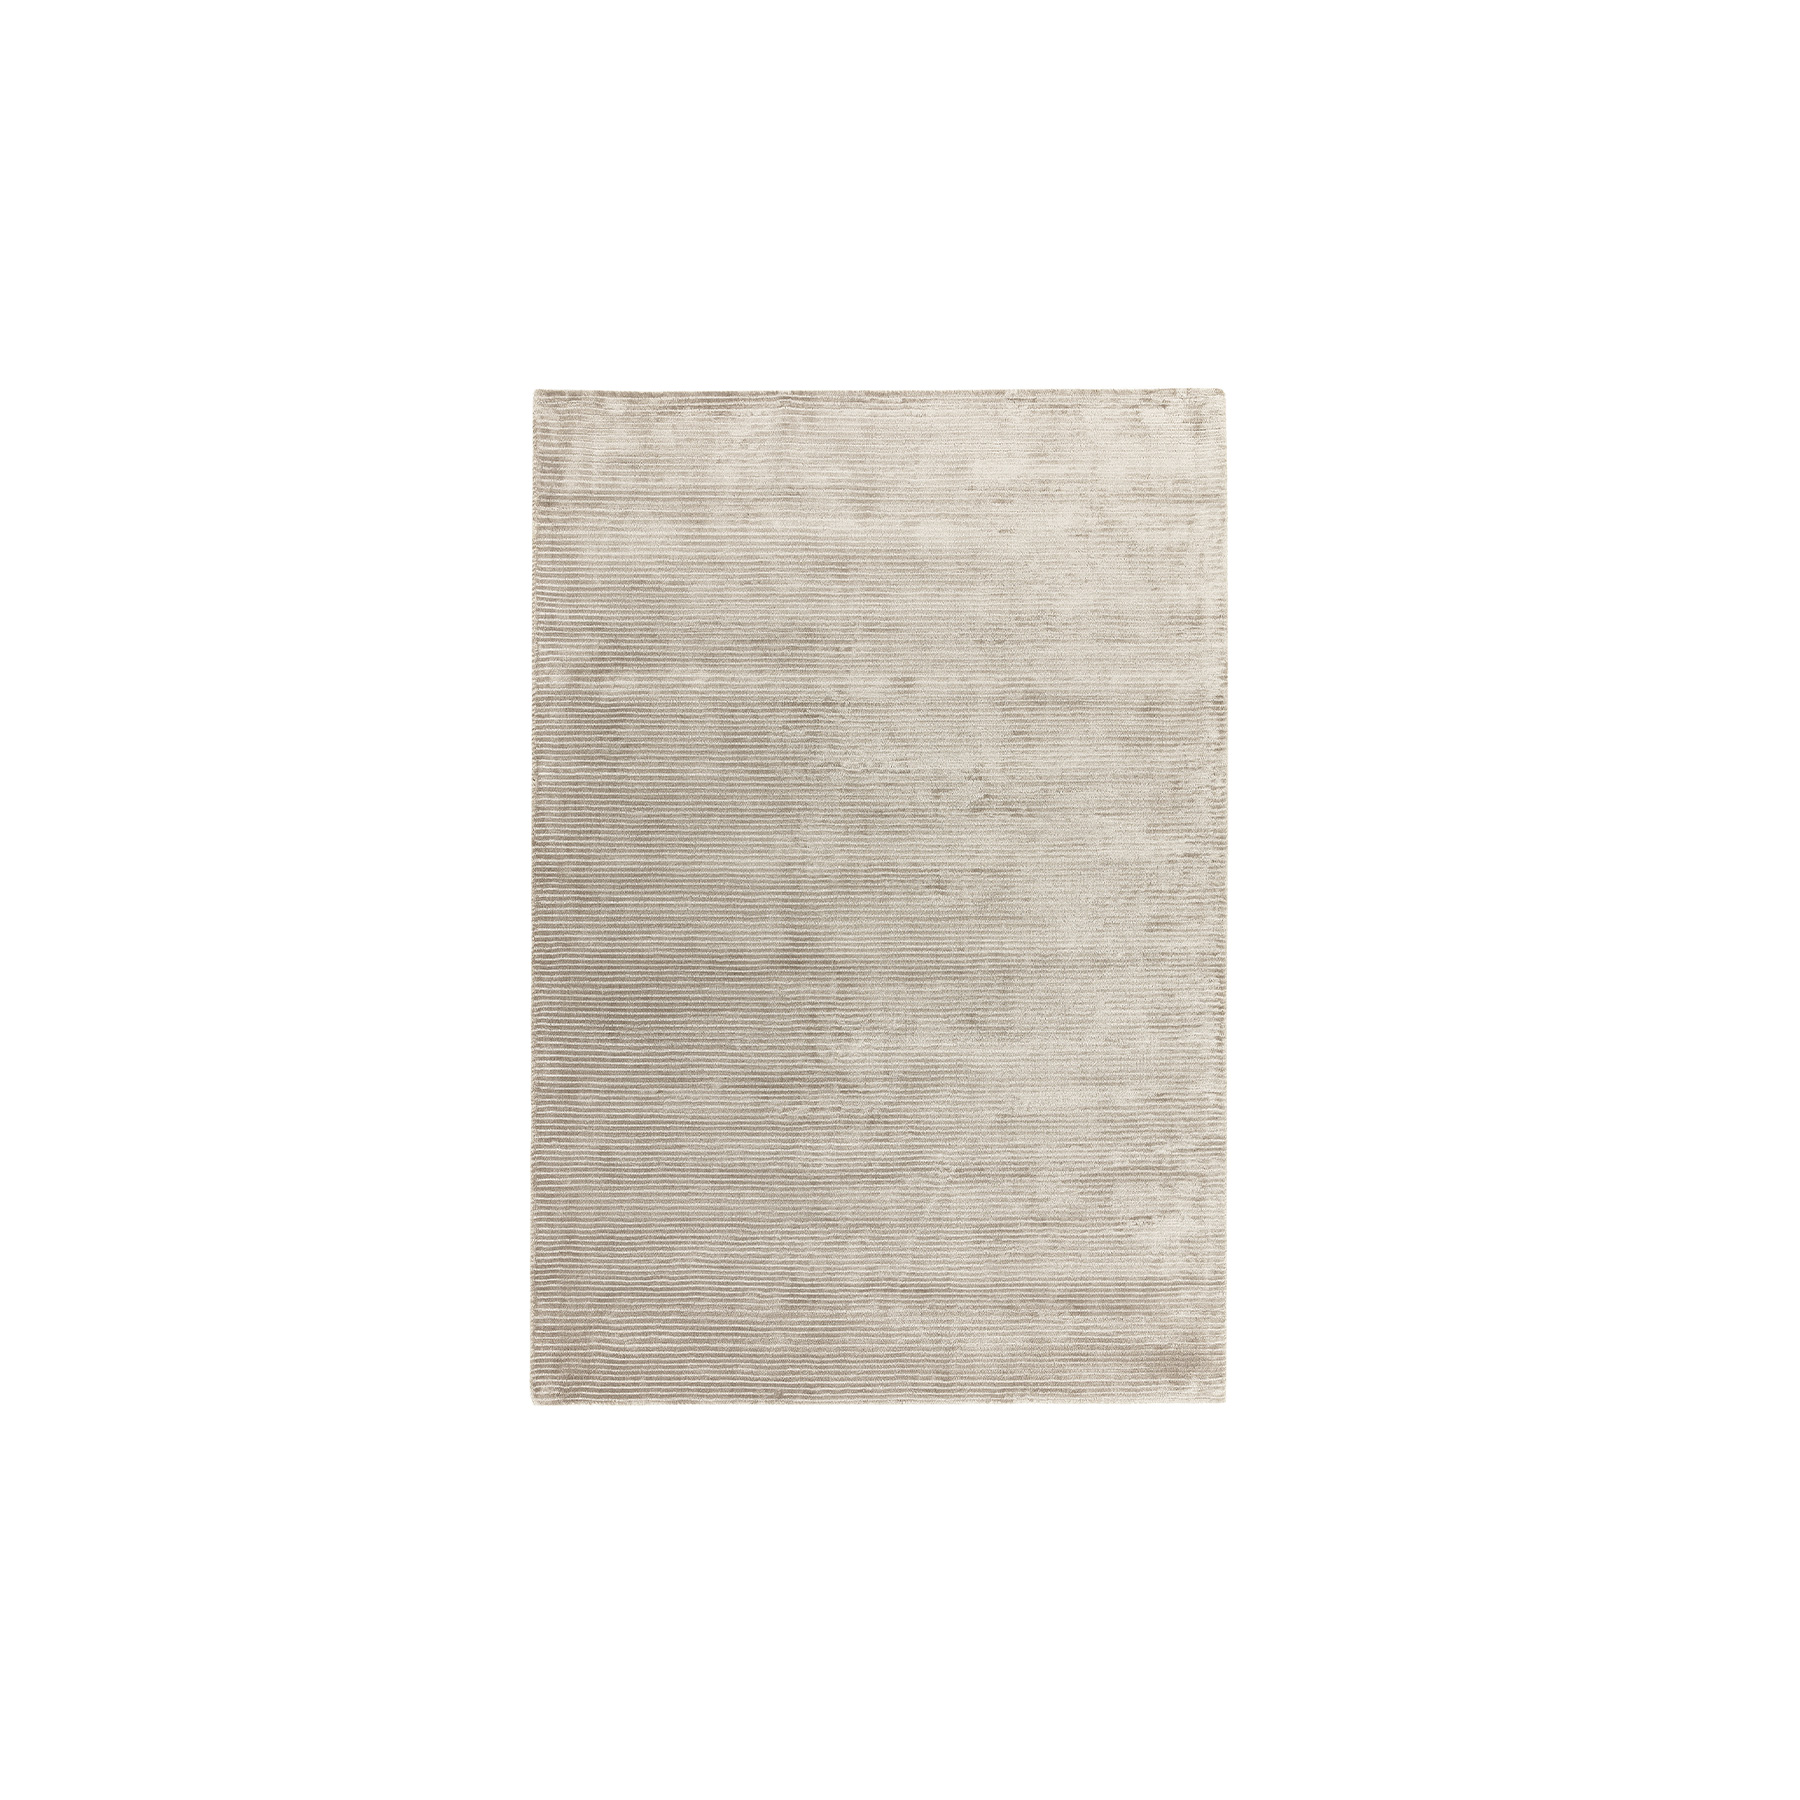 Bellagio Biscuit Rug - The Contemporary Plains Collection of plain rugs feature a largely neutral and natural palette of greys and creams with modern fashionable contrast tones added throughout. The use of clean lines and complementary borders adds visual interest whilst maintaining the contemporary ethos. The Bellagio rugs are Hand-woven viscose with loop stripe detail. Available in different sizes.  | Matter of Stuff